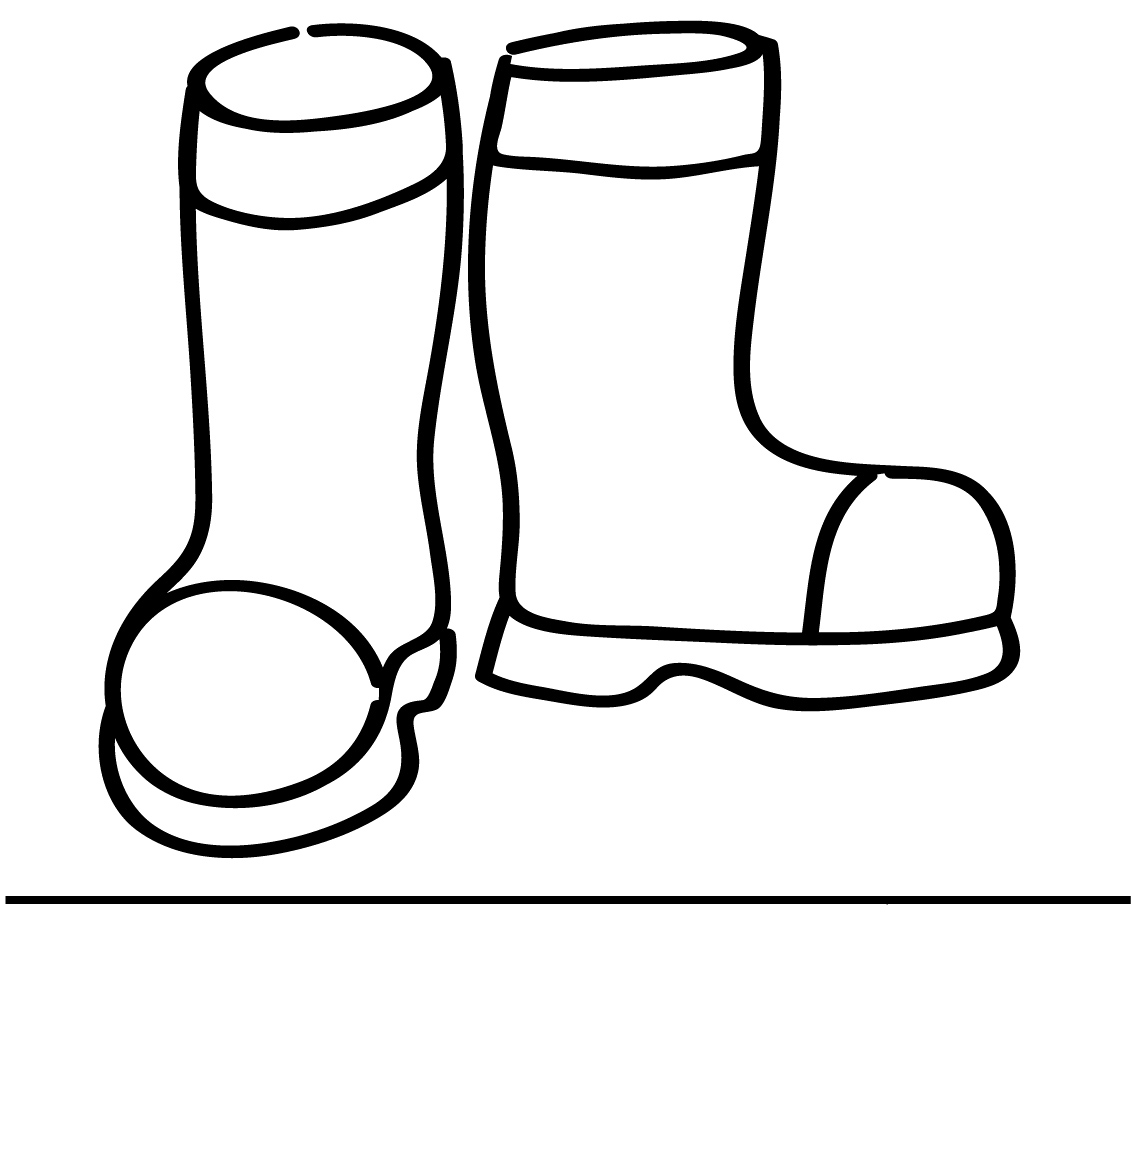 Puut furthermore Boots Coloring together with Coloring Pages in addition Clipart Umbrella 512x512 59da together with Kids Coloring Page 01. on drawings of raincoat